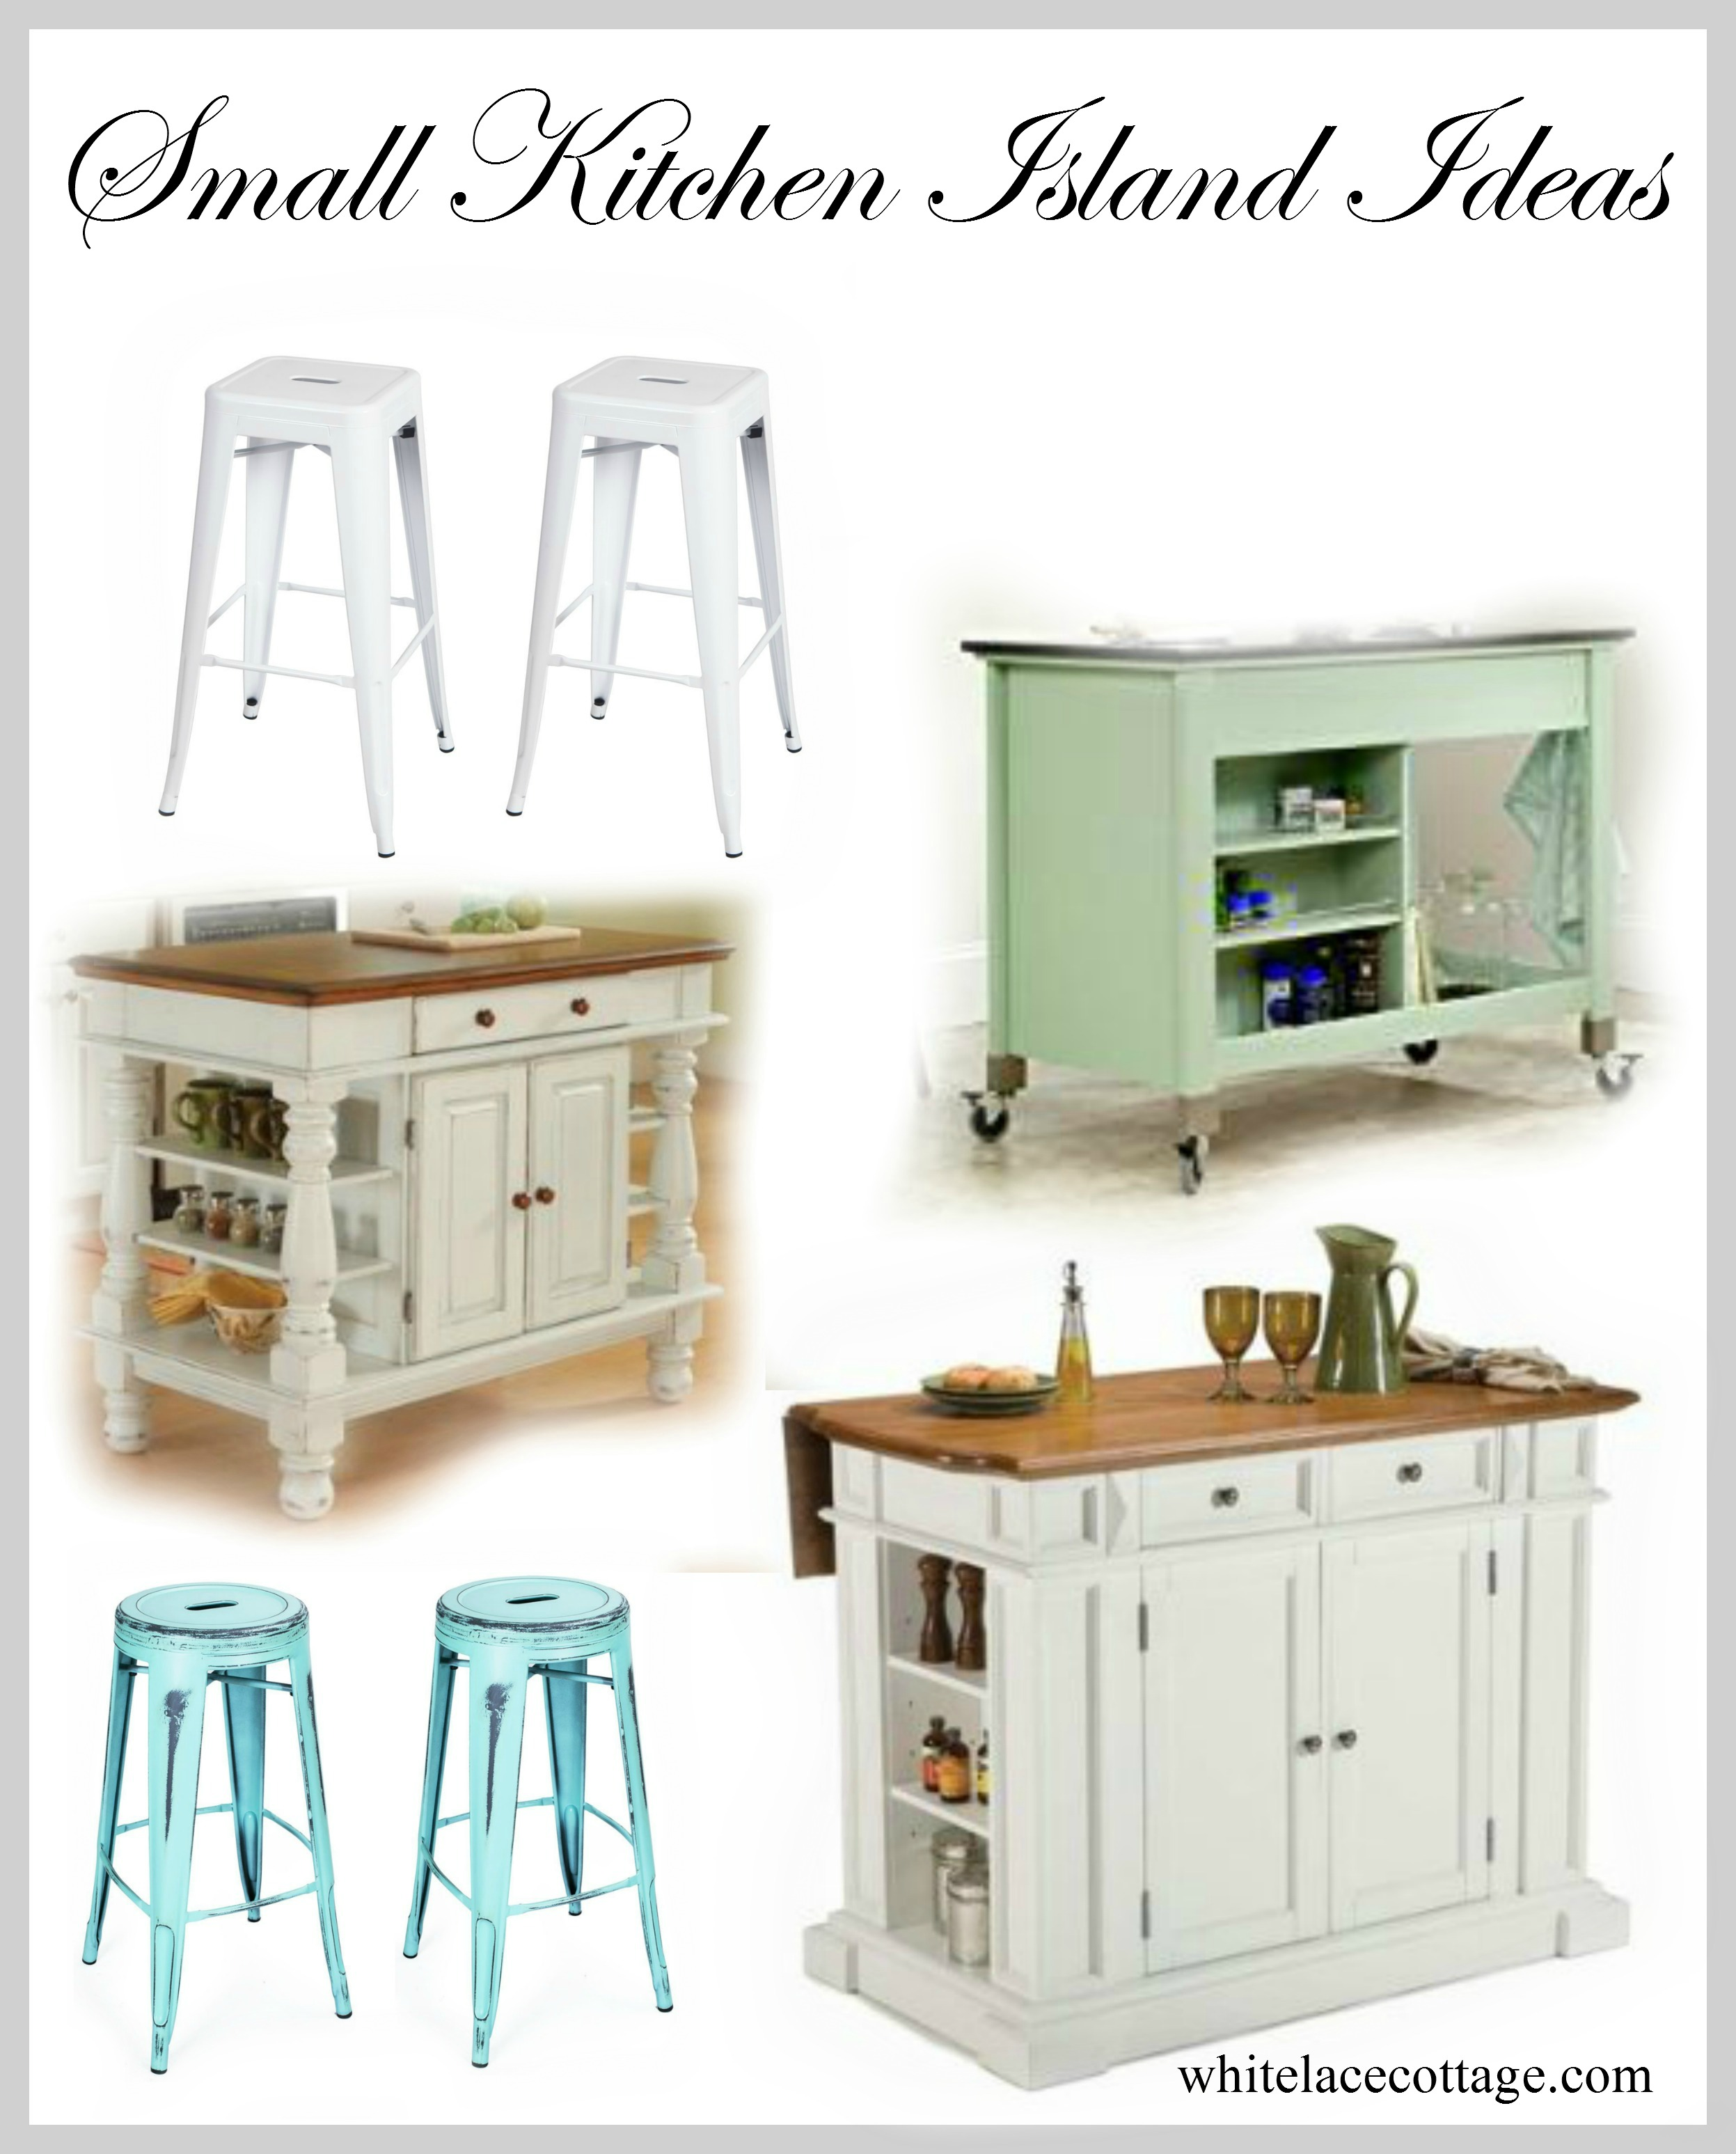 Small kitchen island ideas with seating white lace cottage for Small kitchen island designs